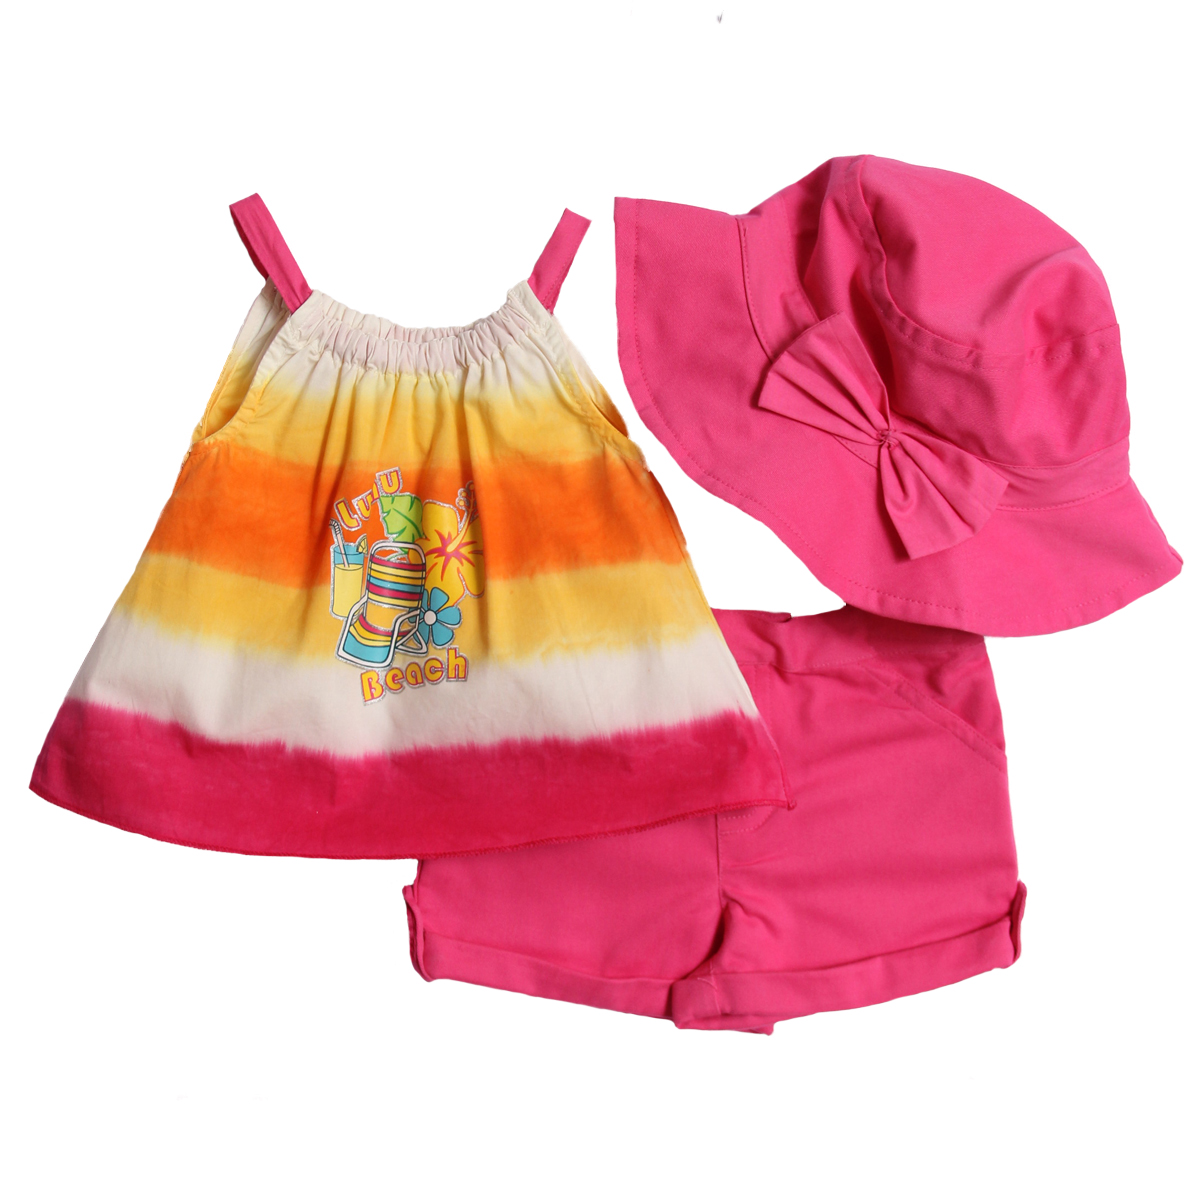 B.T. Kids Newborn Baby Girls 3 Piece Hot Pink Tank Top and Shorts Set with Sun Hat at Sears.com